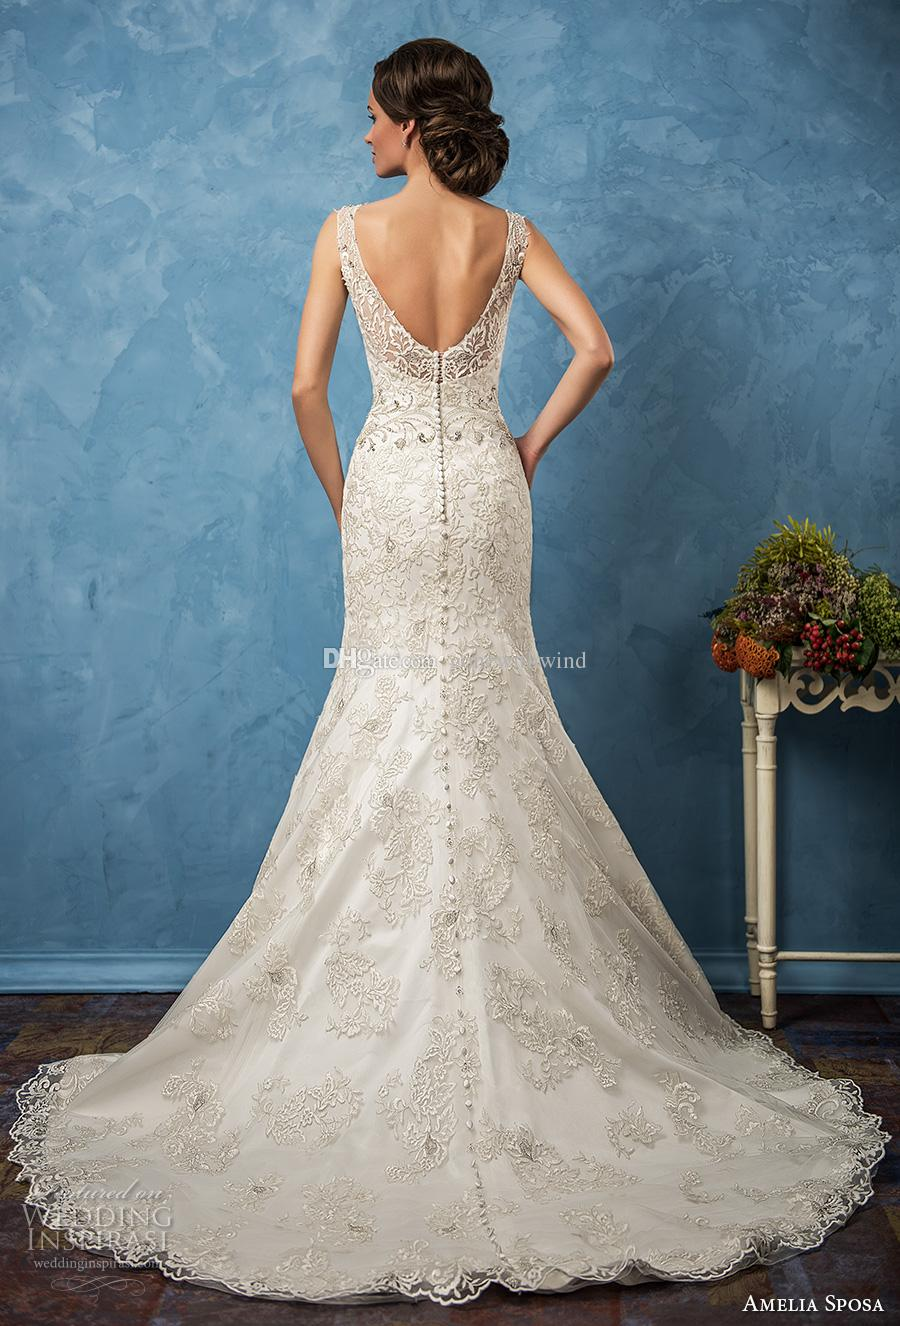 Mermaid Wedding Dresses 2017 Amelia Sposa Bridal Gowns Thick Lace ...